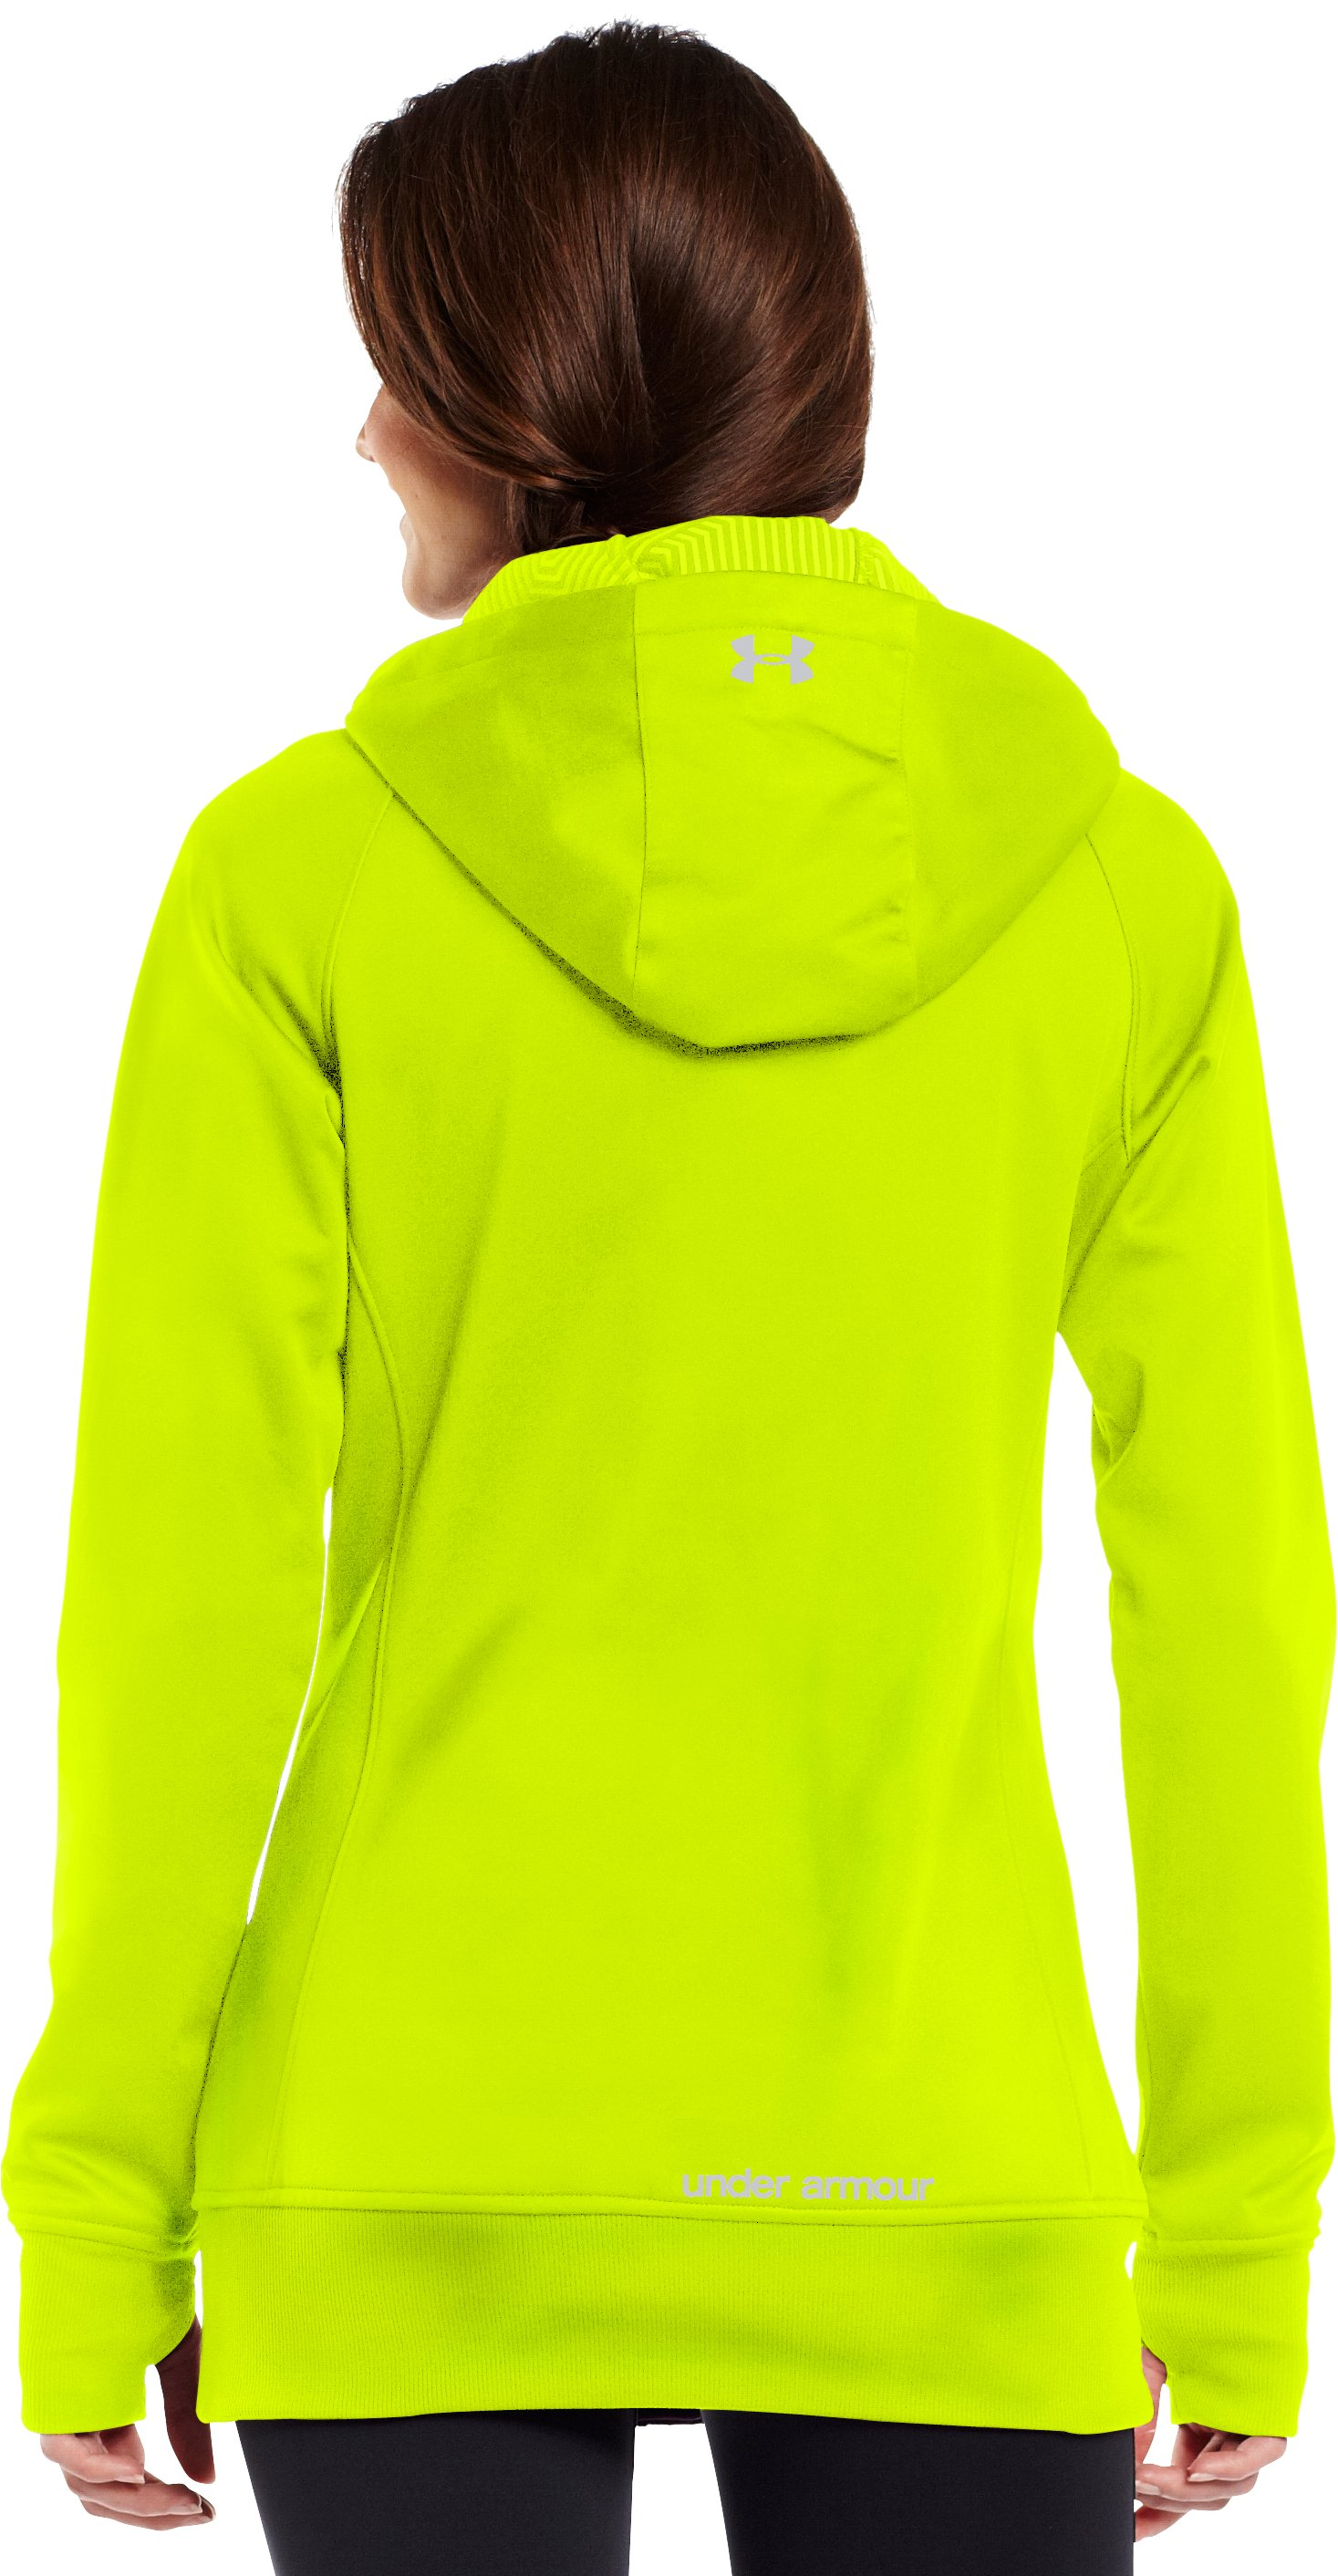 Women's ColdGear® Infrared Softershell, High-Vis Yellow, Back